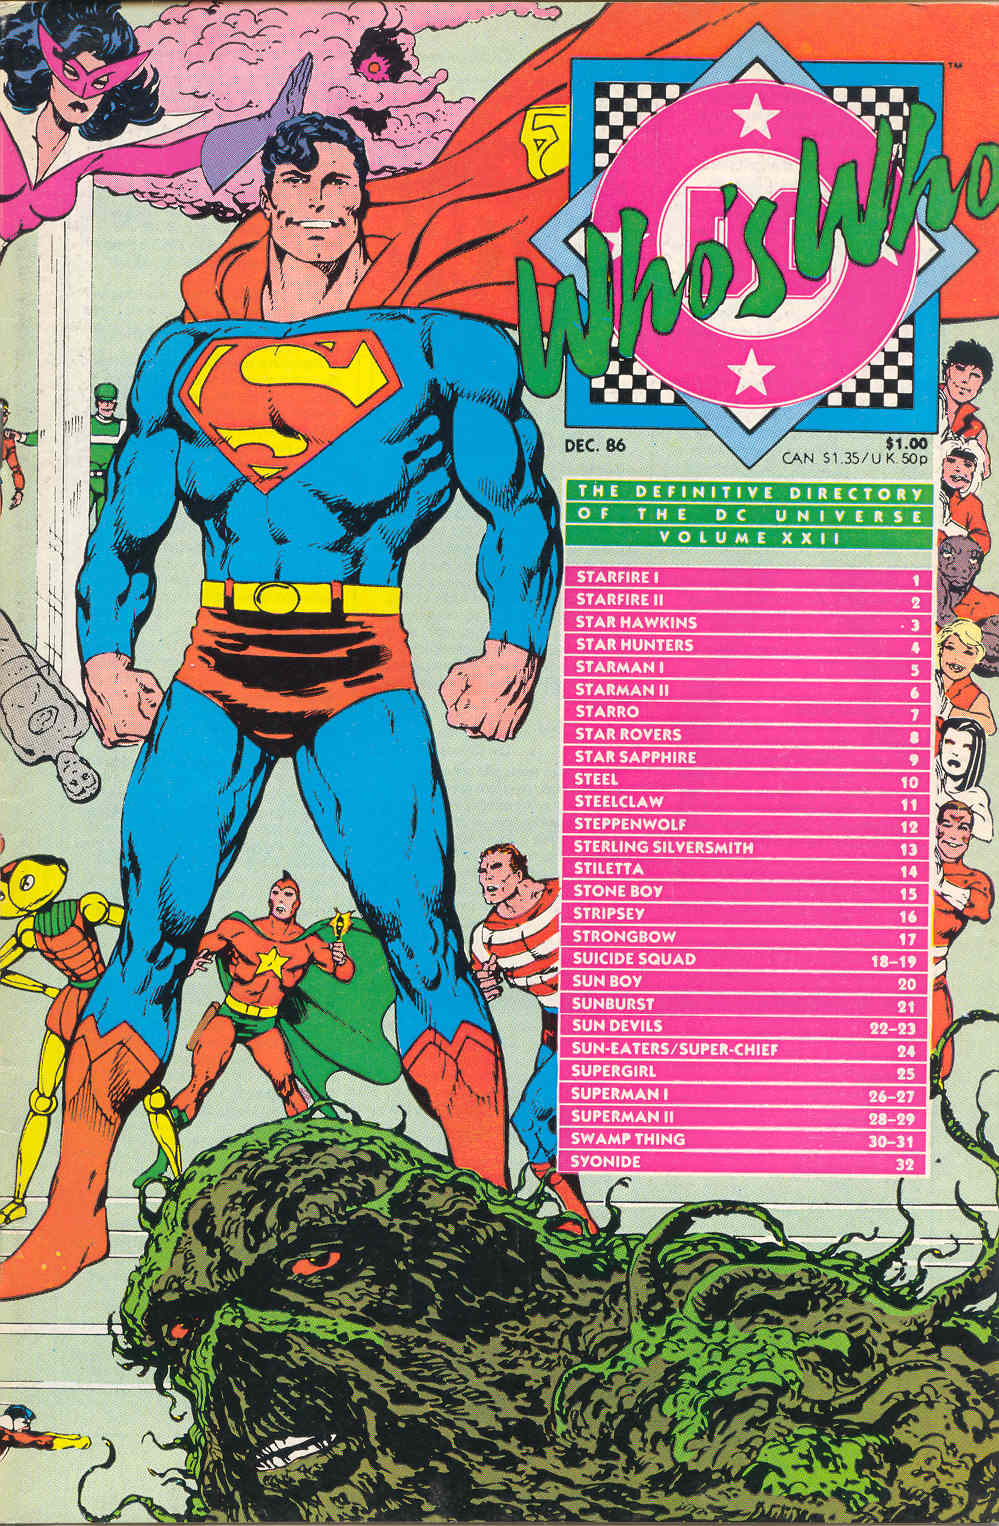 Whos Who: The Definitive Directory of the DC Universe 22 Page 1